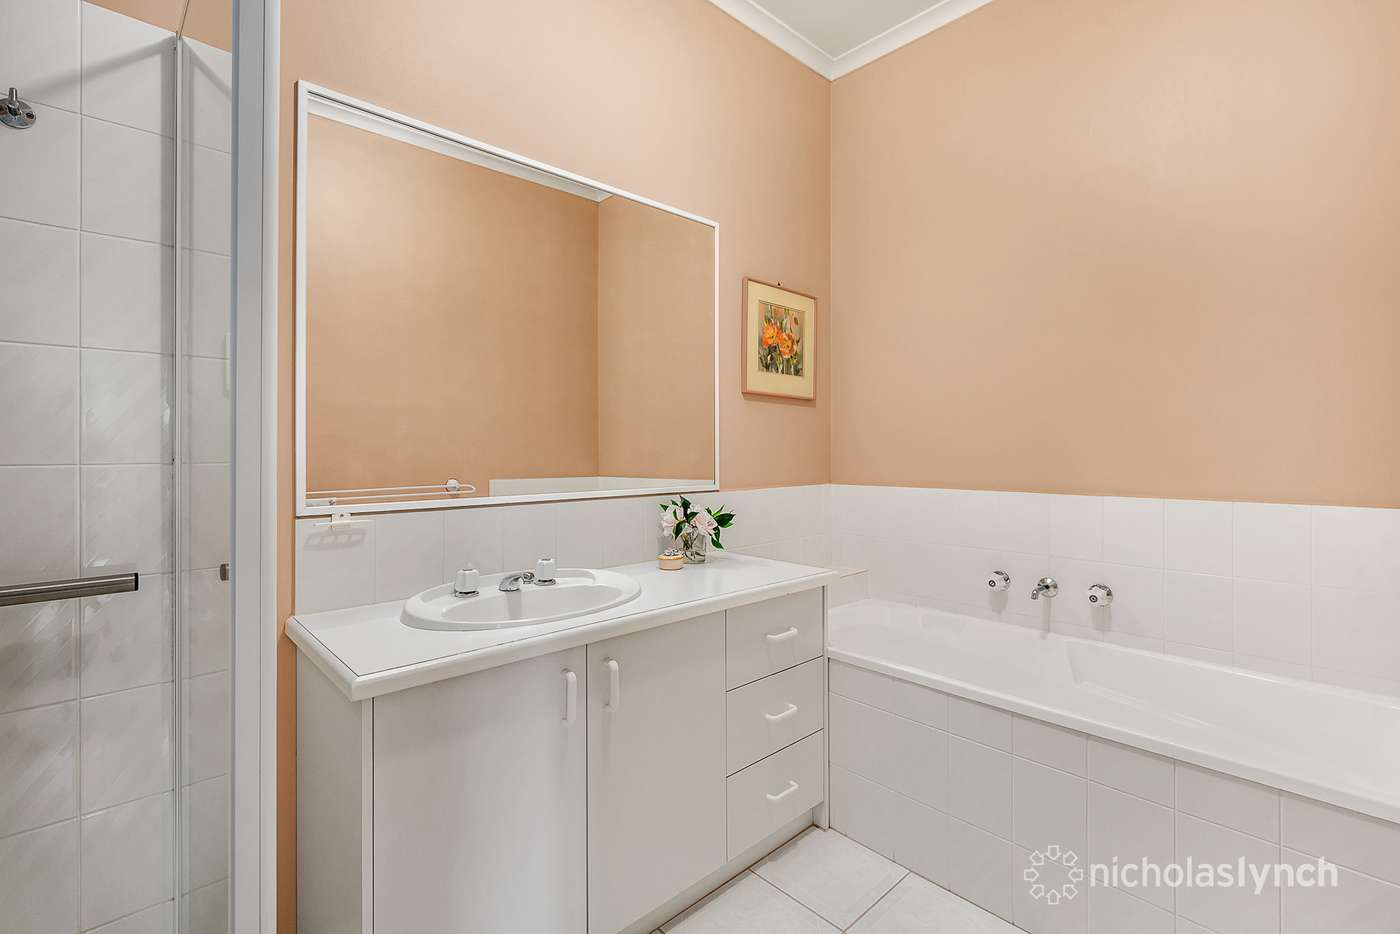 Sixth view of Homely house listing, 10 Cranswick Court, Mornington VIC 3931